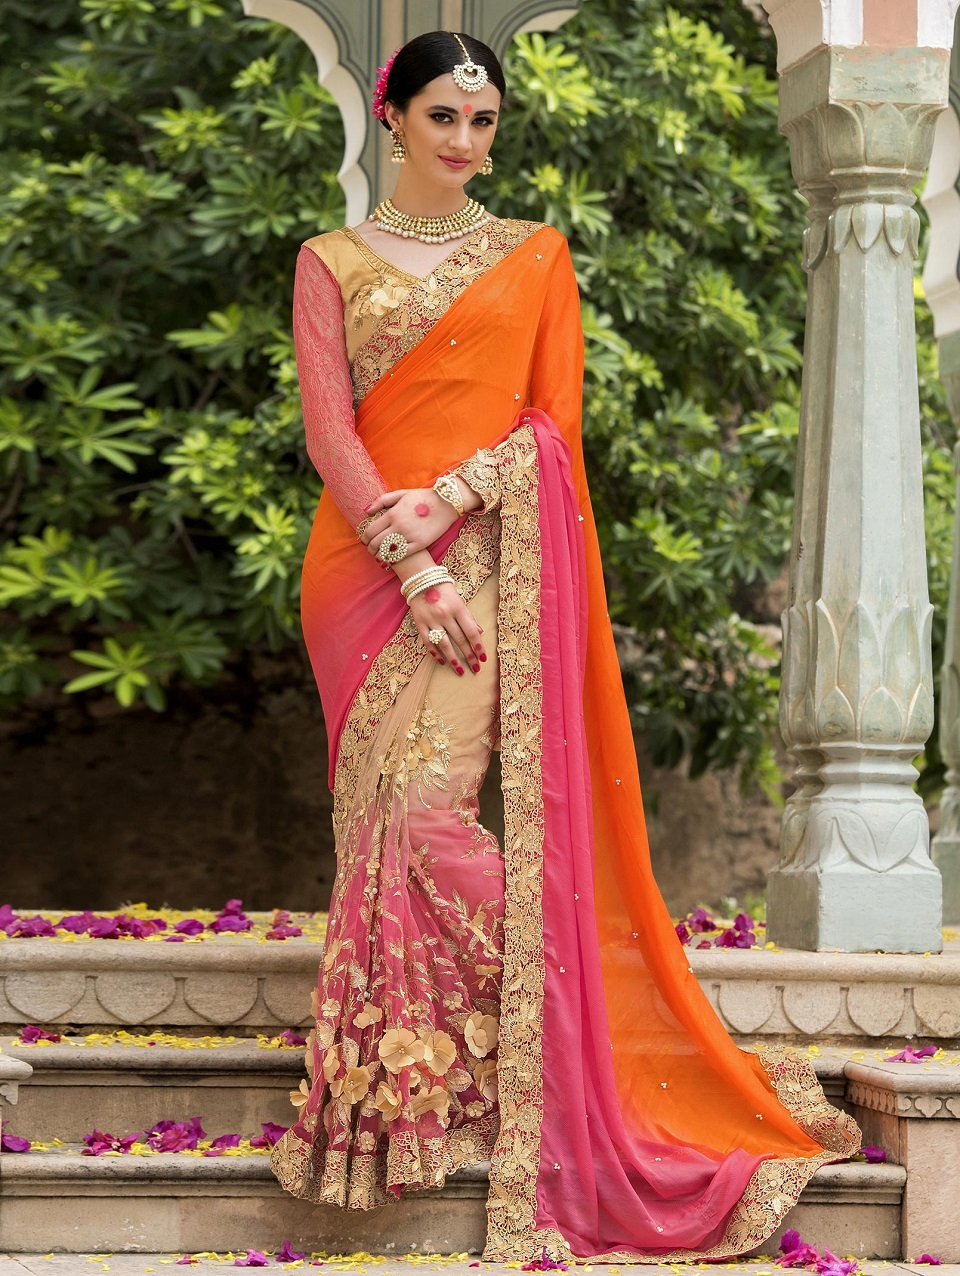 Indian Wedding Saree Latest Designs Trends Collection 2017 2018 18